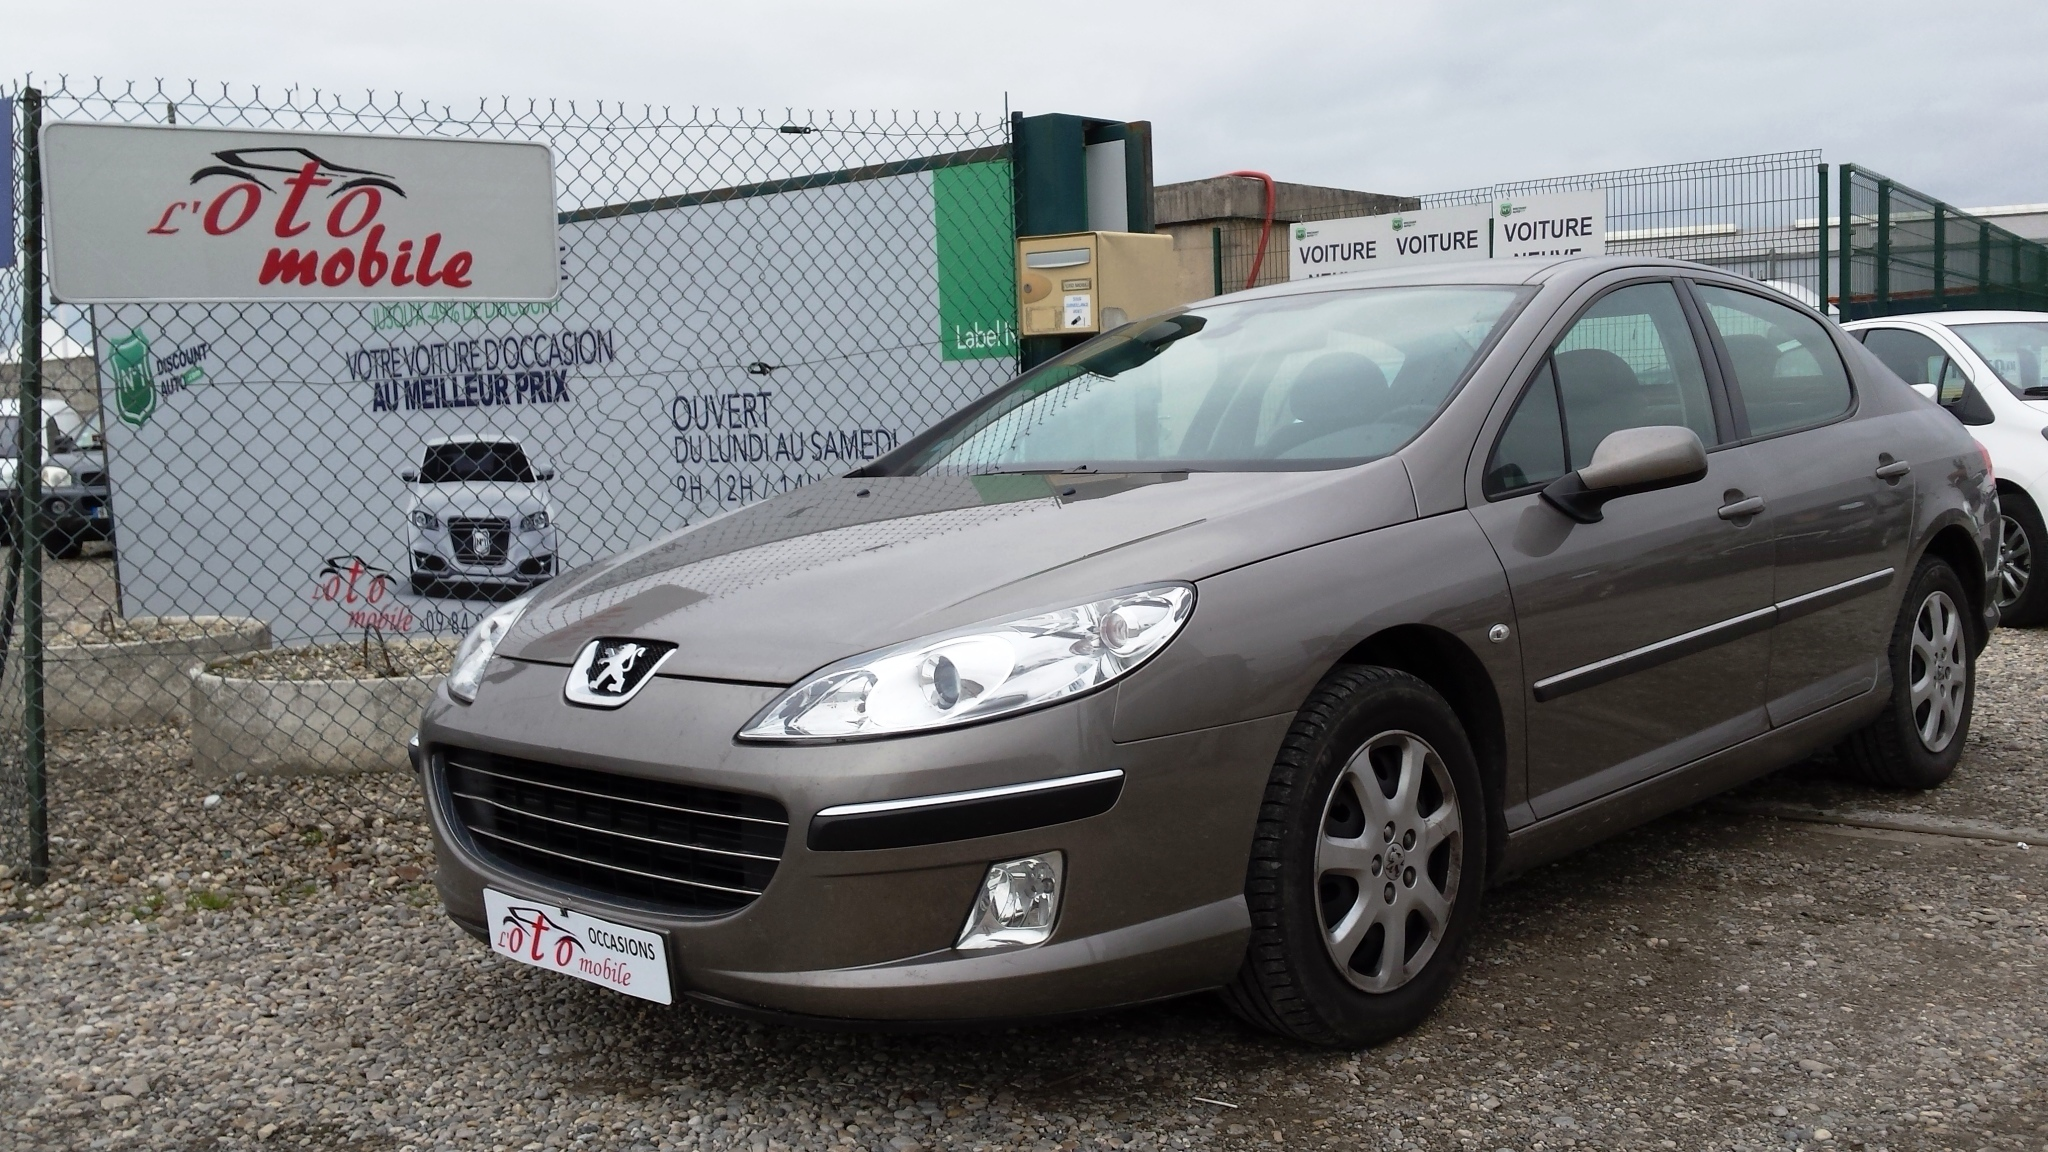 voiture peugeot 407 executive 1 6 hdi 16v 110 fap 1 main occasion diesel 2006 121500 km. Black Bedroom Furniture Sets. Home Design Ideas